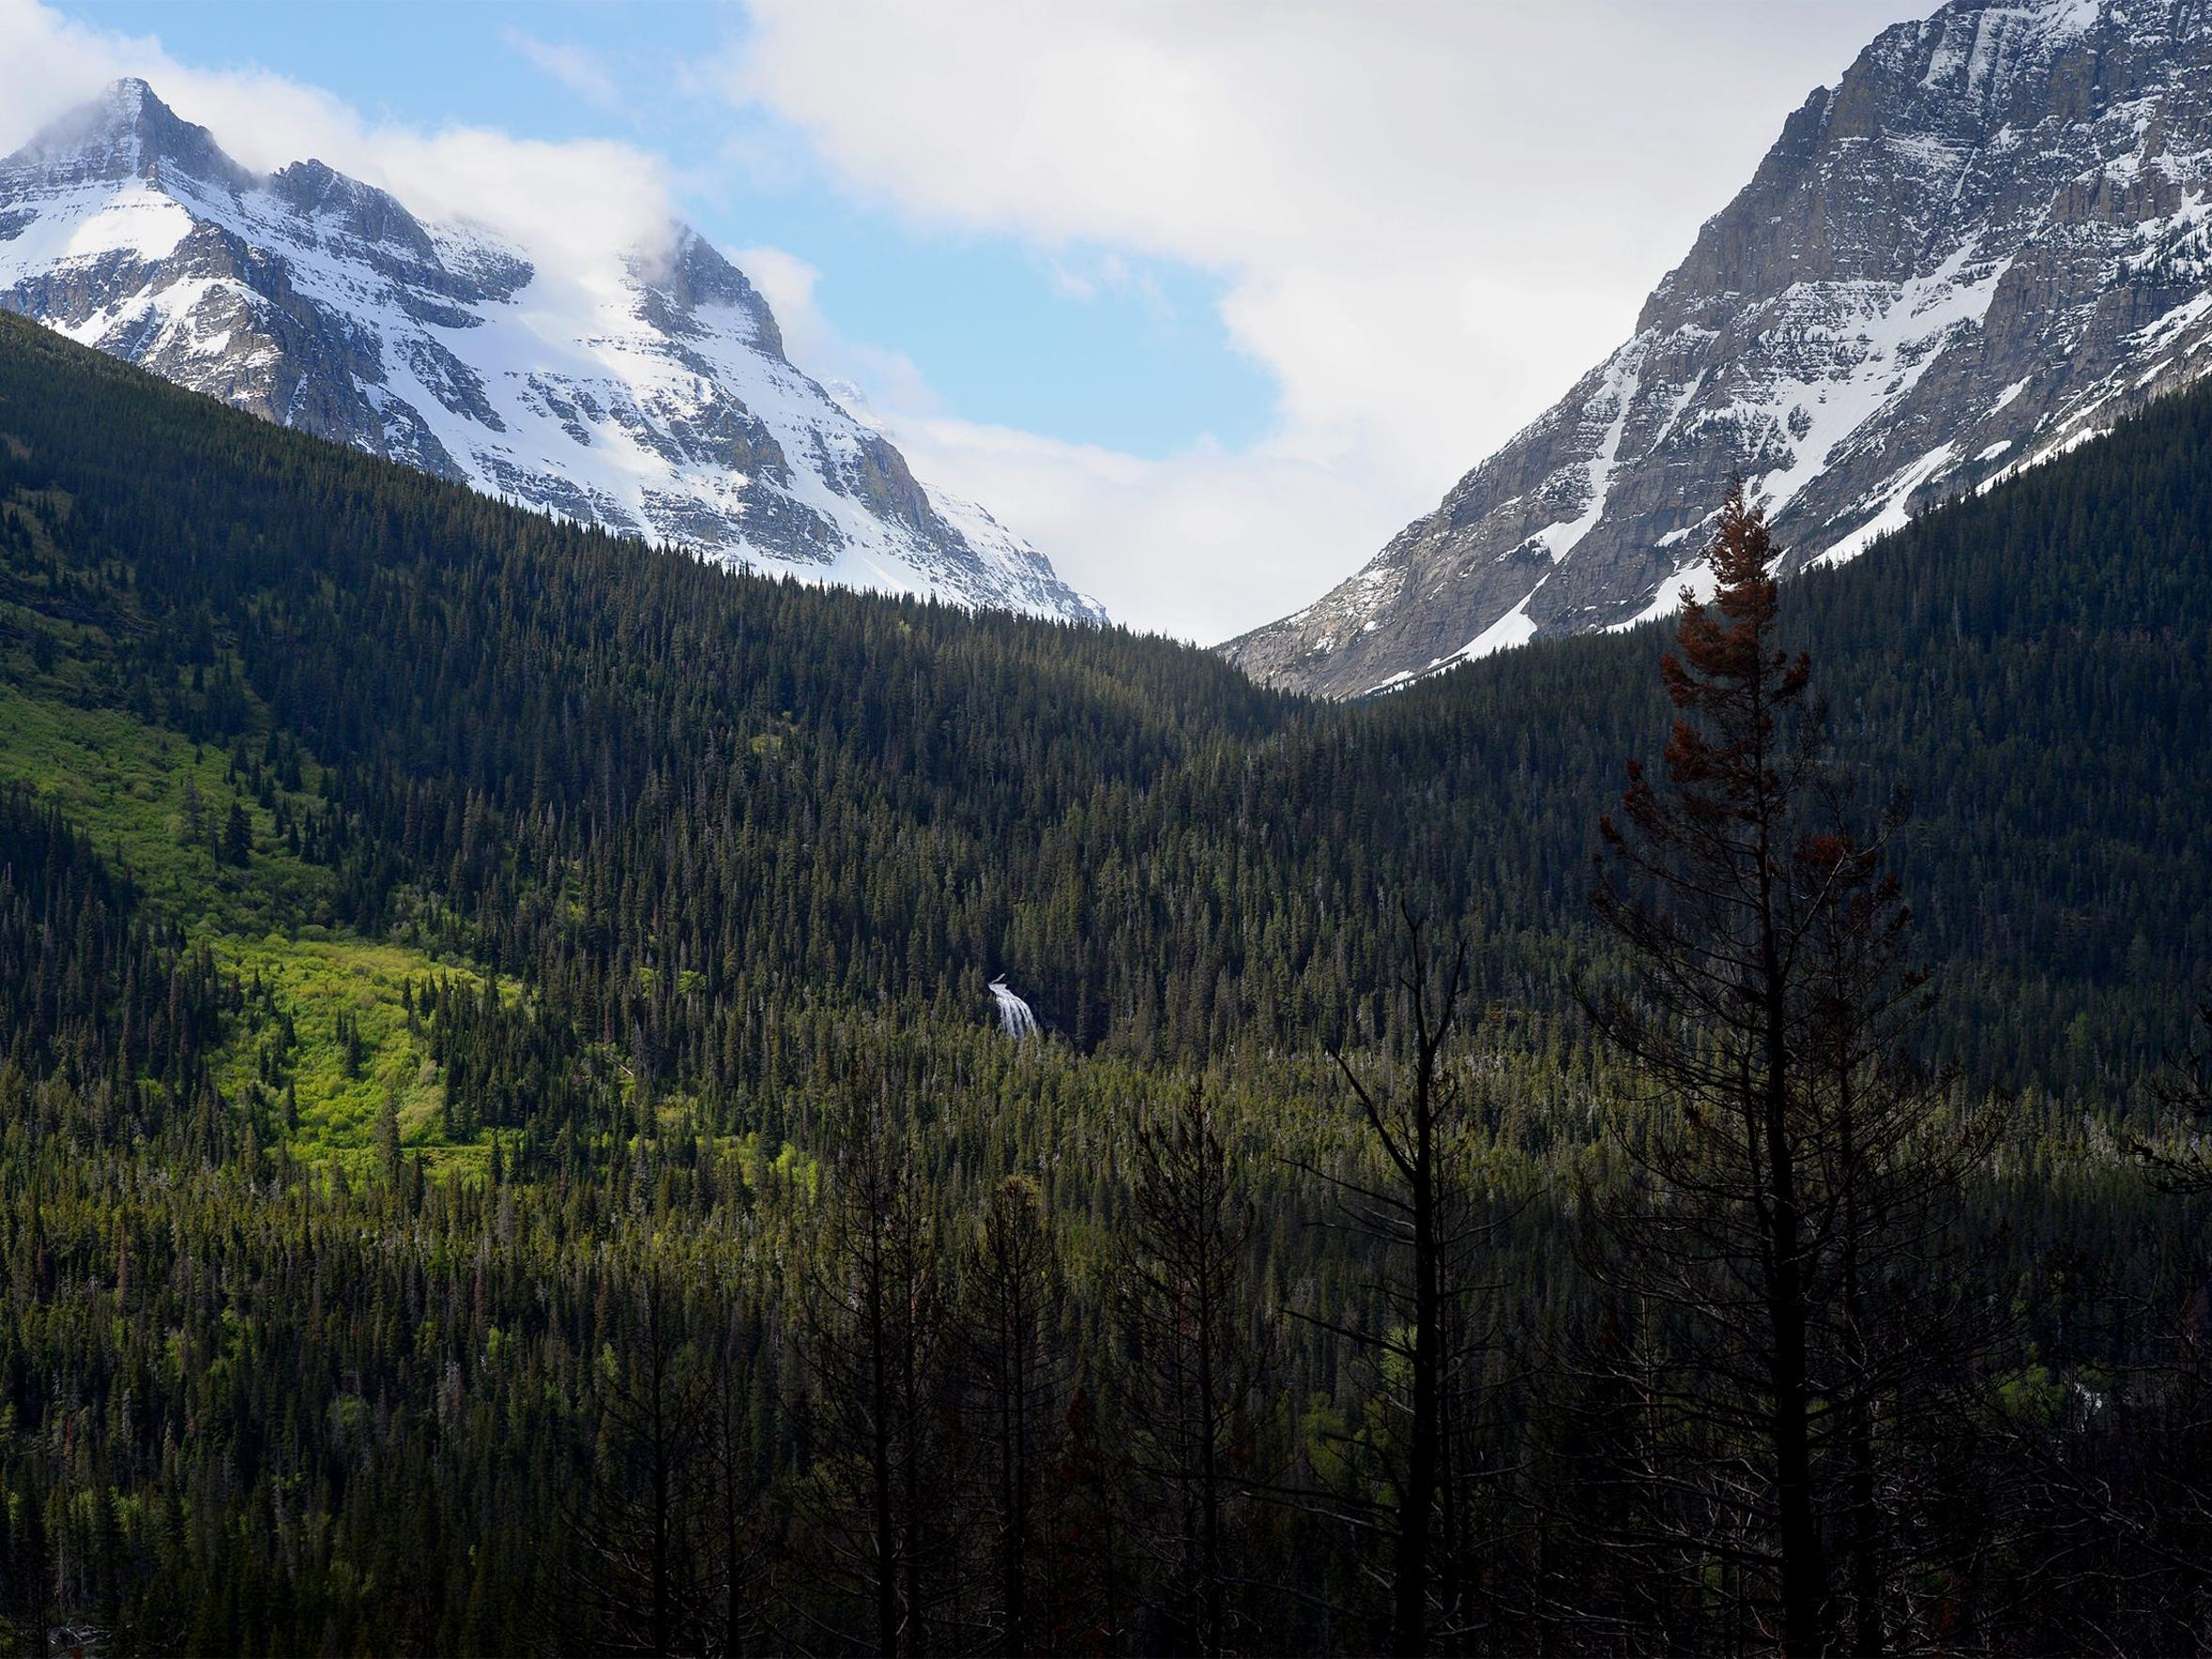 From Going-to-the-Sun Road in Glacier National Park